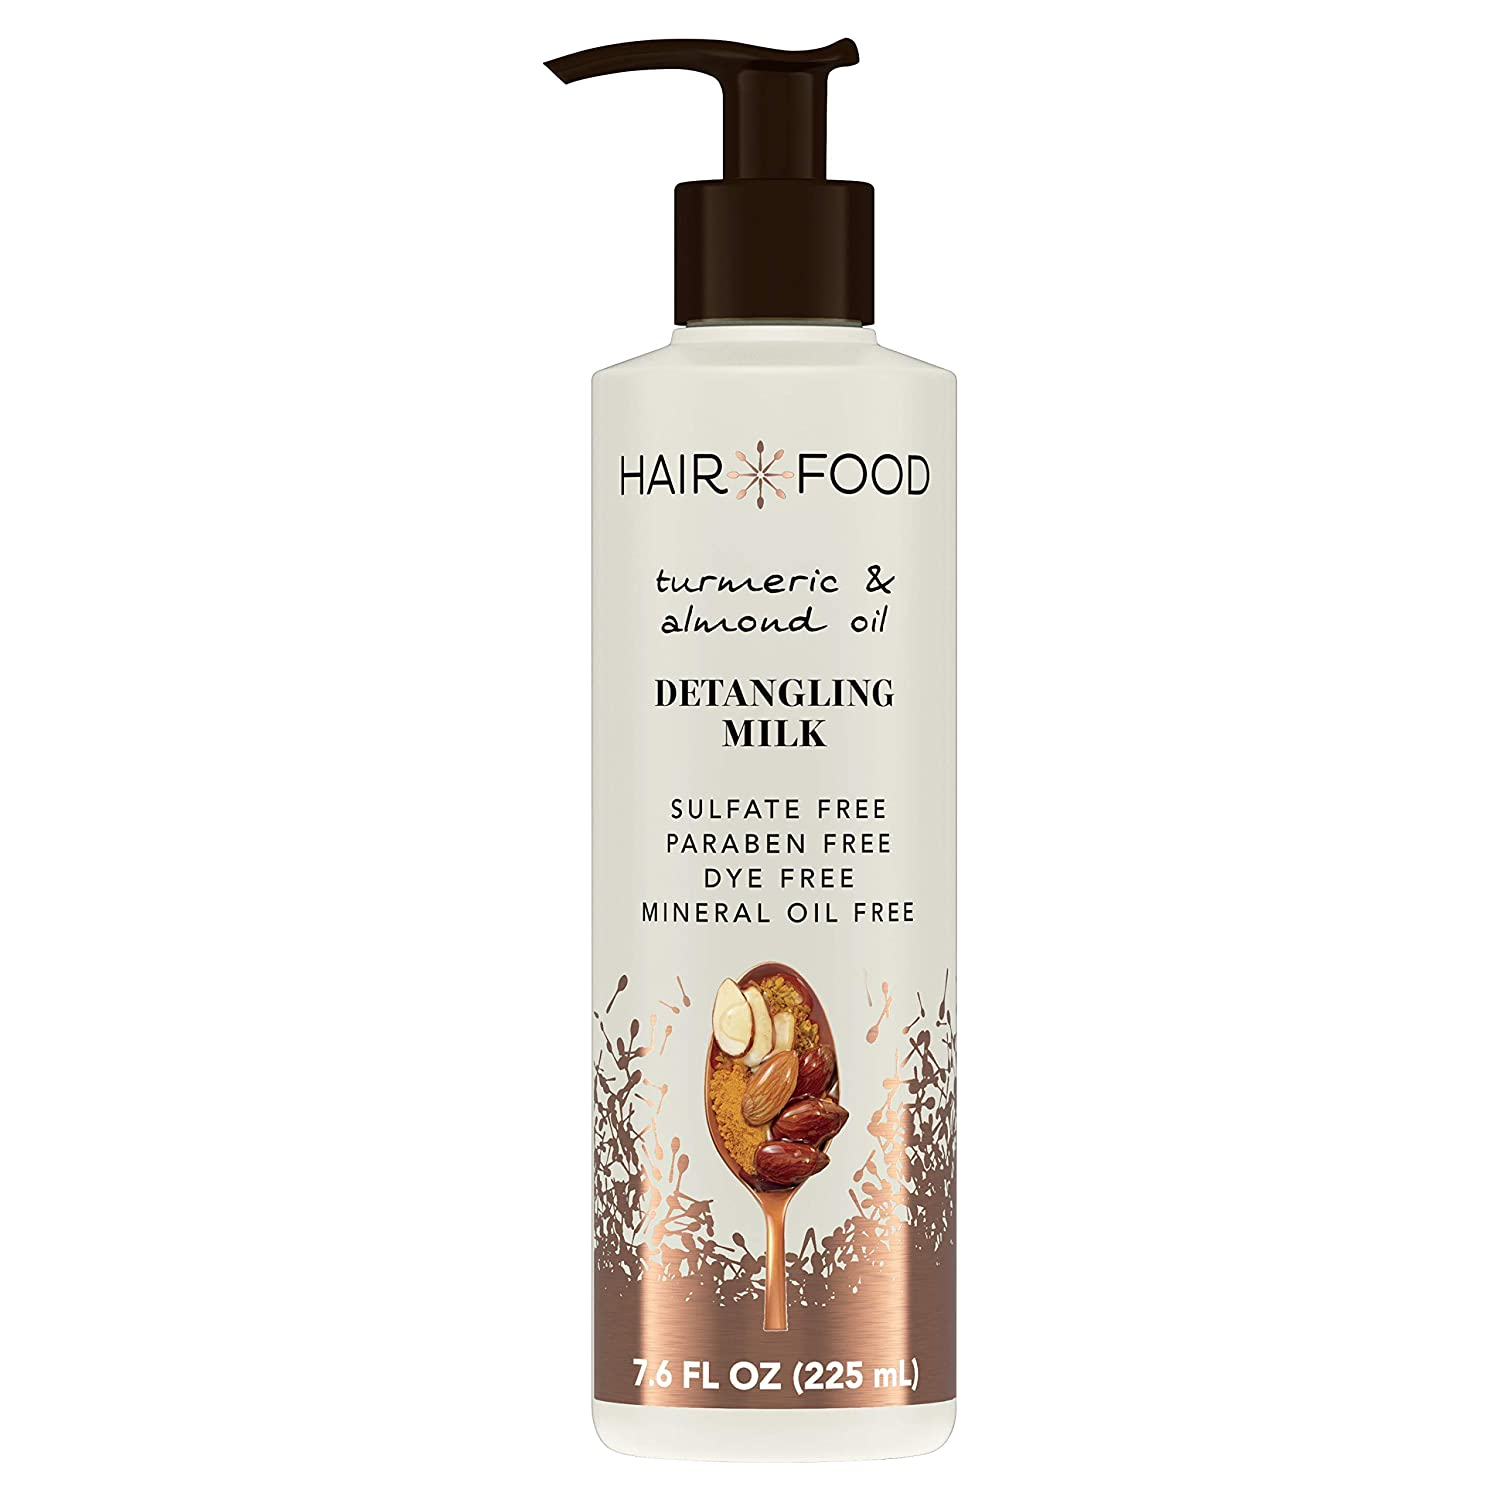 Hair Food Hair Food Turmeric & Almond Oil Detangling Milk, 7.6 Fl. Ounce Hair Styling Product for Curly Hair, 7.6 fluid_ounces